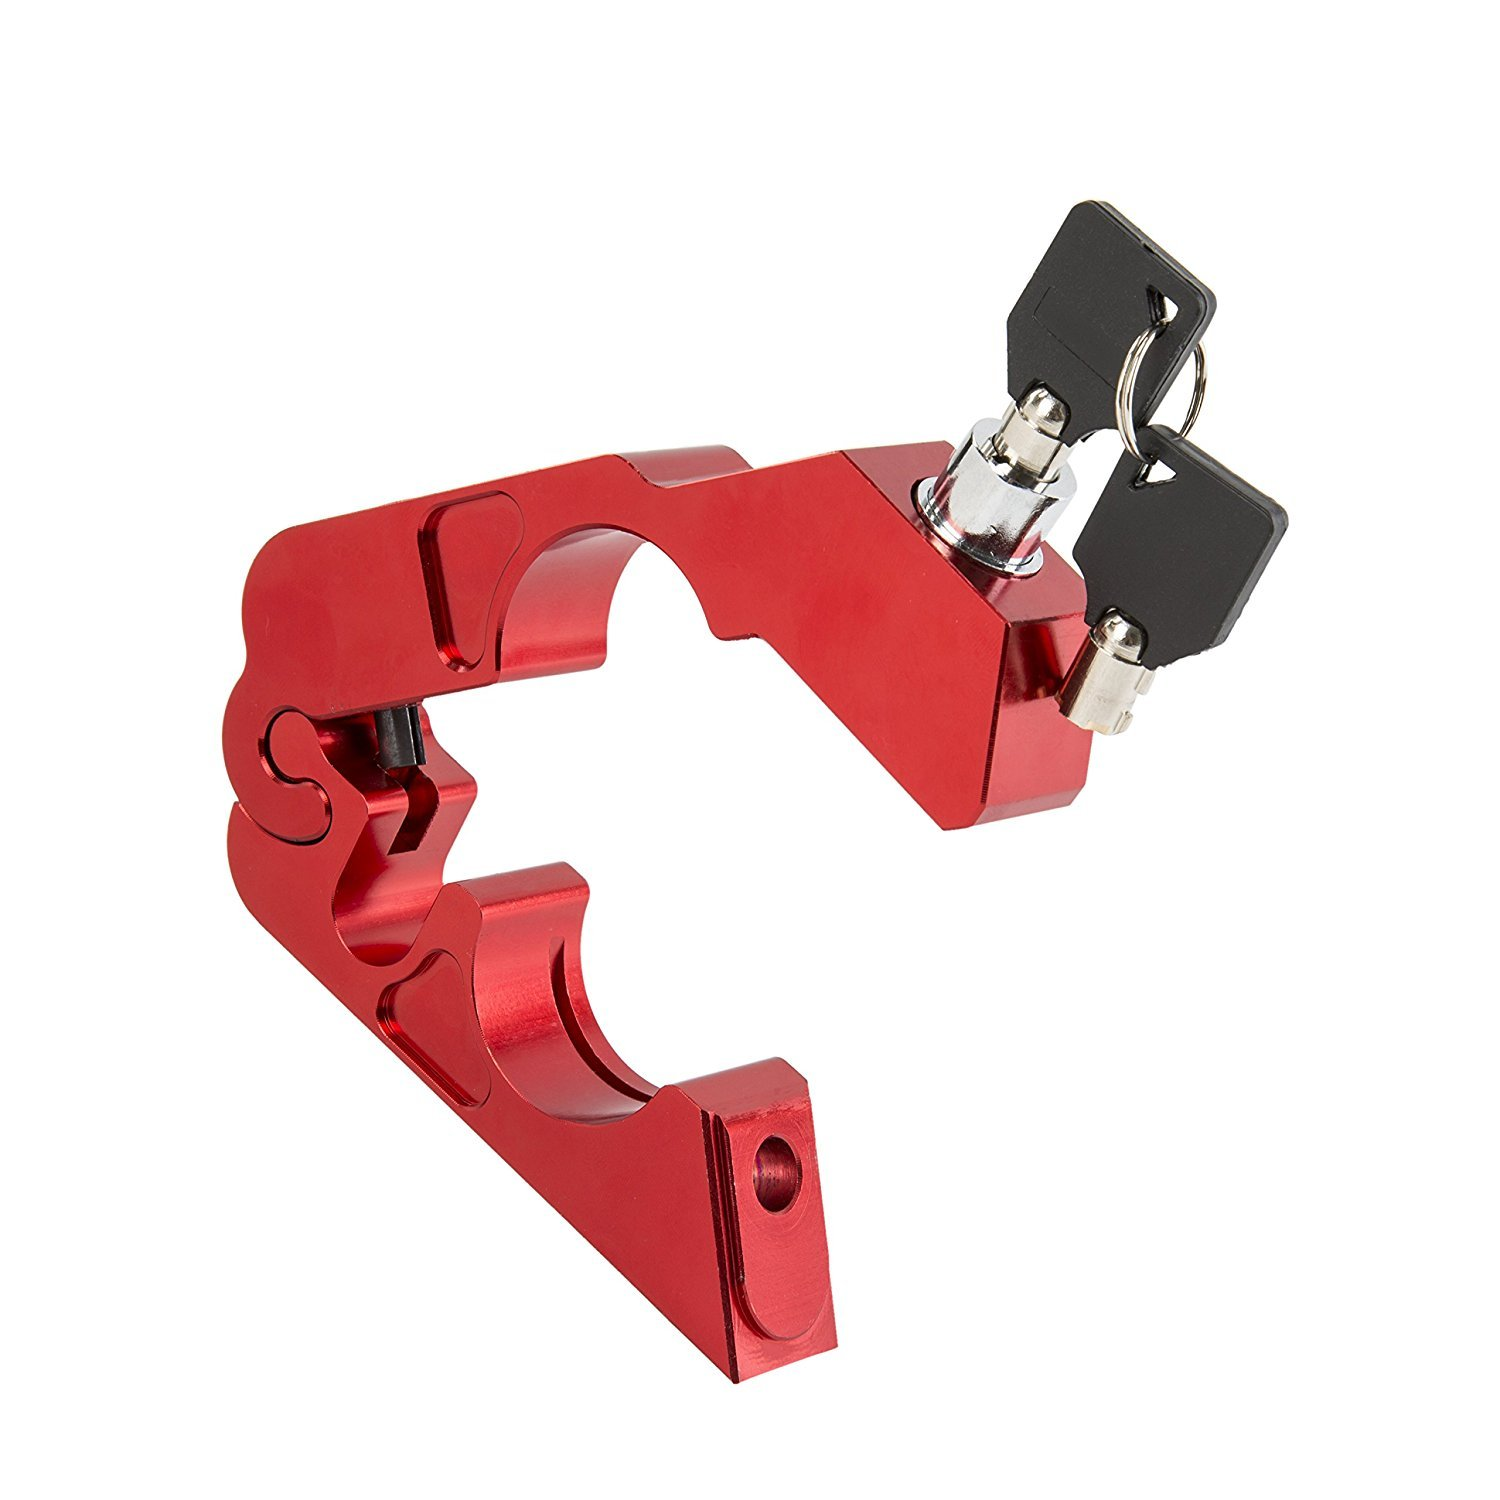 Moped or ATV Scooter Grip//Throttle // Brake//Handlebar Lock Universal Alloy CNC Motorcycle Handle Throttle Grip Security Lock with 2 Keys to Secure a Bike Motorcycle Lock